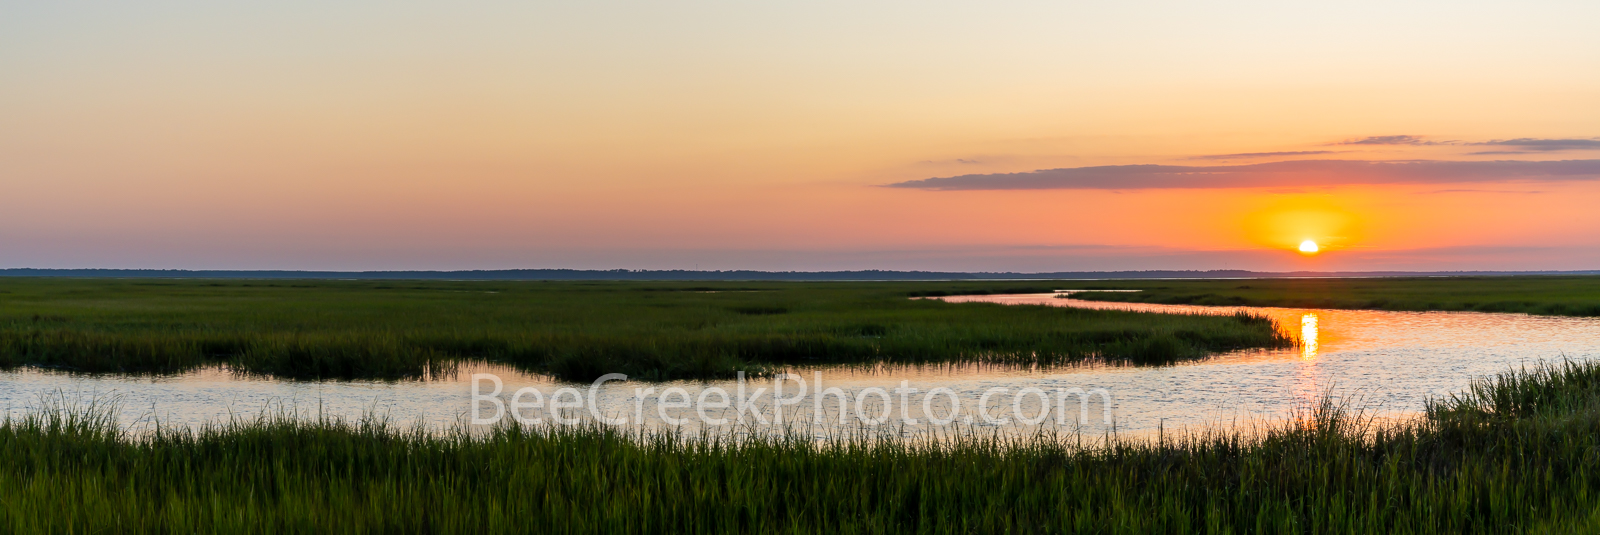 salt marsh, marshland, marsh, jekyll island, barrier island, st. simon island, georgia, coast, sunset, orange, pink, golden isles, barrier island sky, shrimp, nature, shrimping, natural, pano, panoram, photo